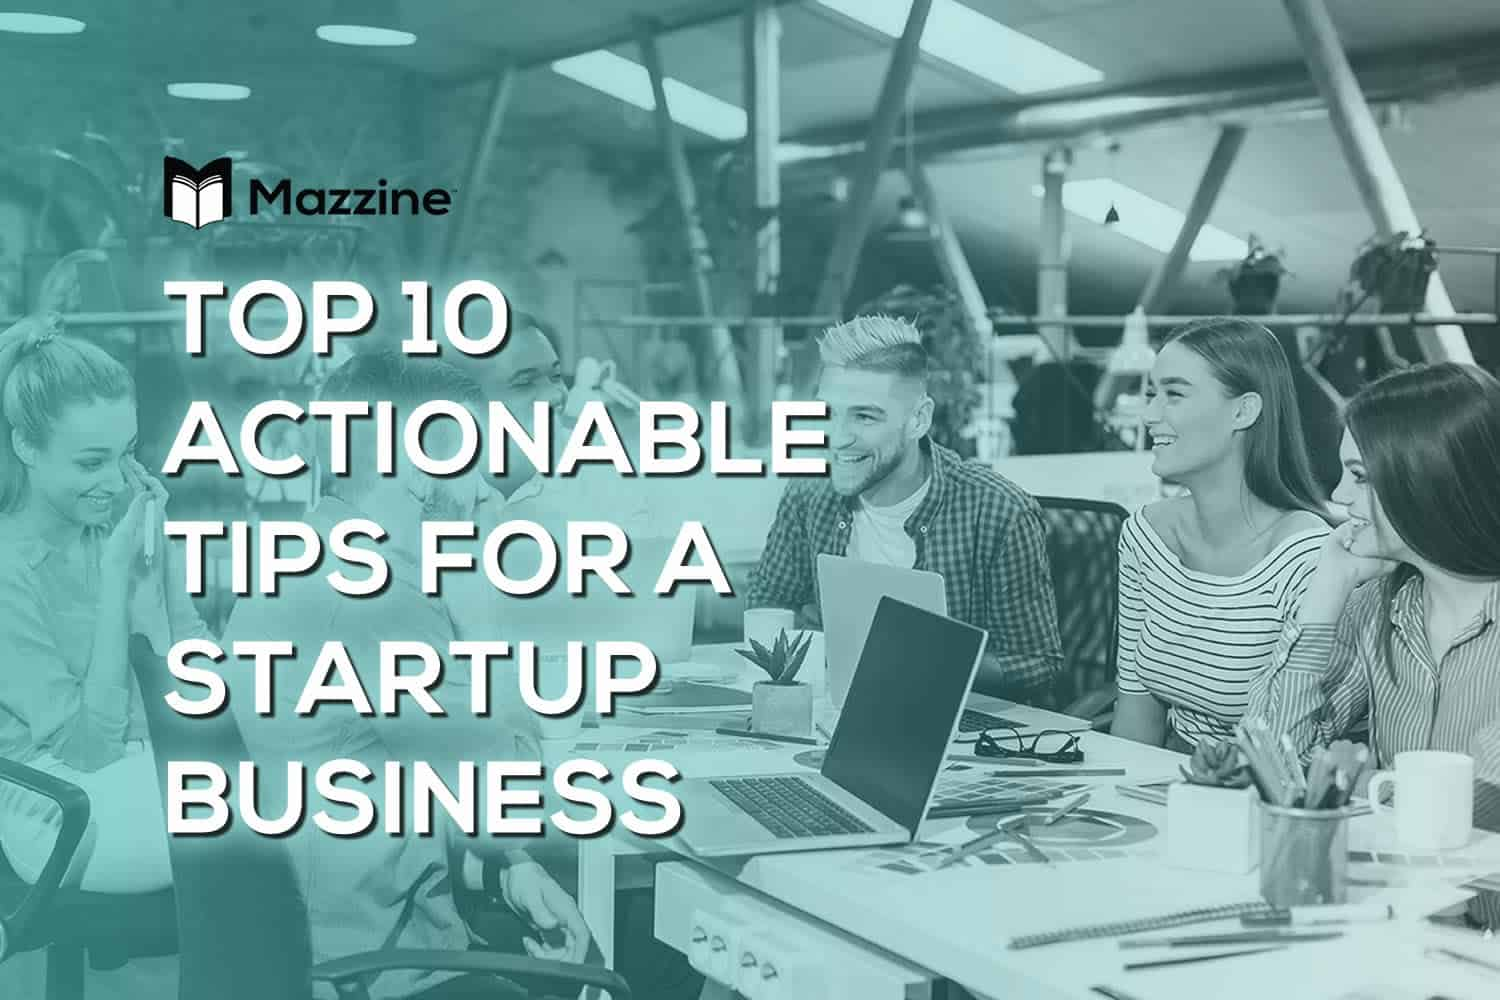 Top 10 Actionable Tips for a Successful Startup Business